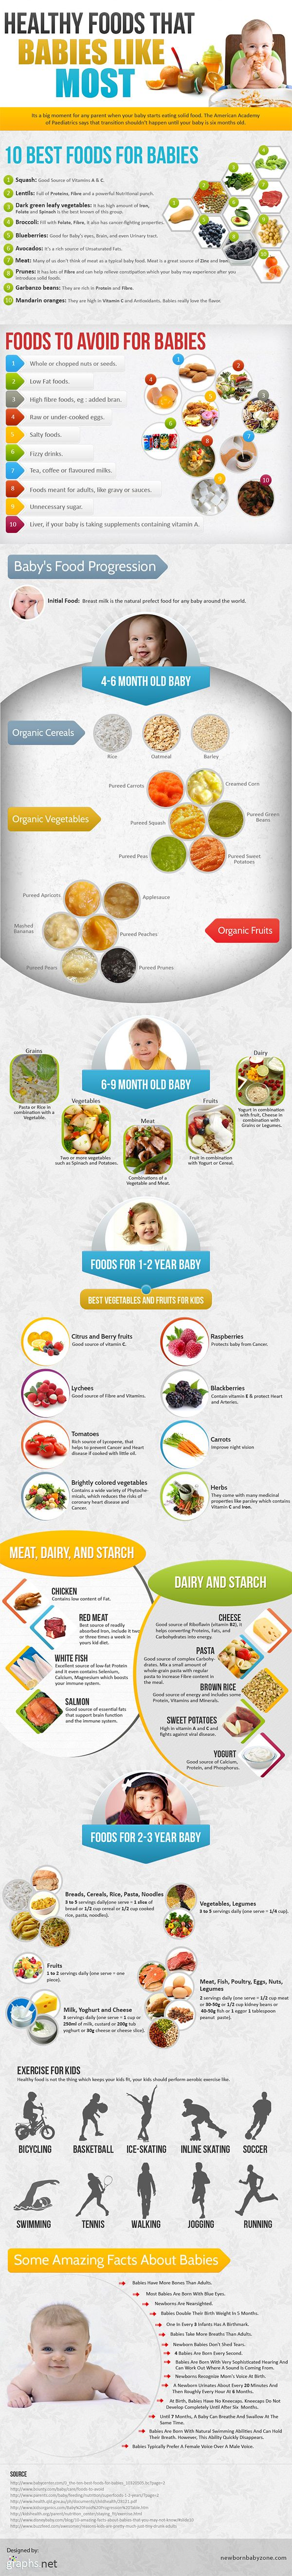 Healthy Foods and eating timeline for babies